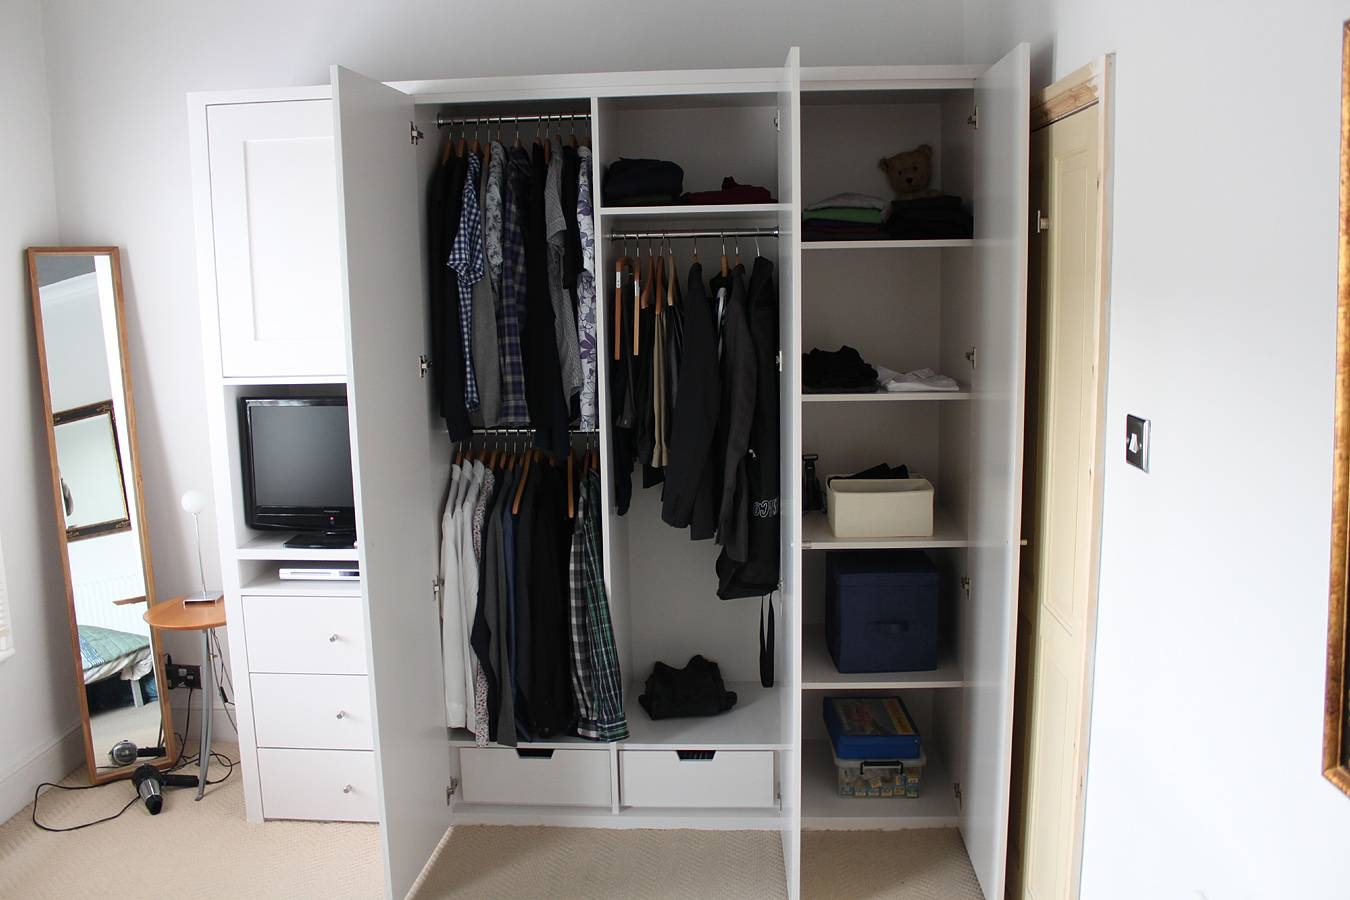 Armoire Designe » Armoire With Drawers And Shelves - Dernier pertaining to Drawers And Shelves For Wardrobes (Image 6 of 30)